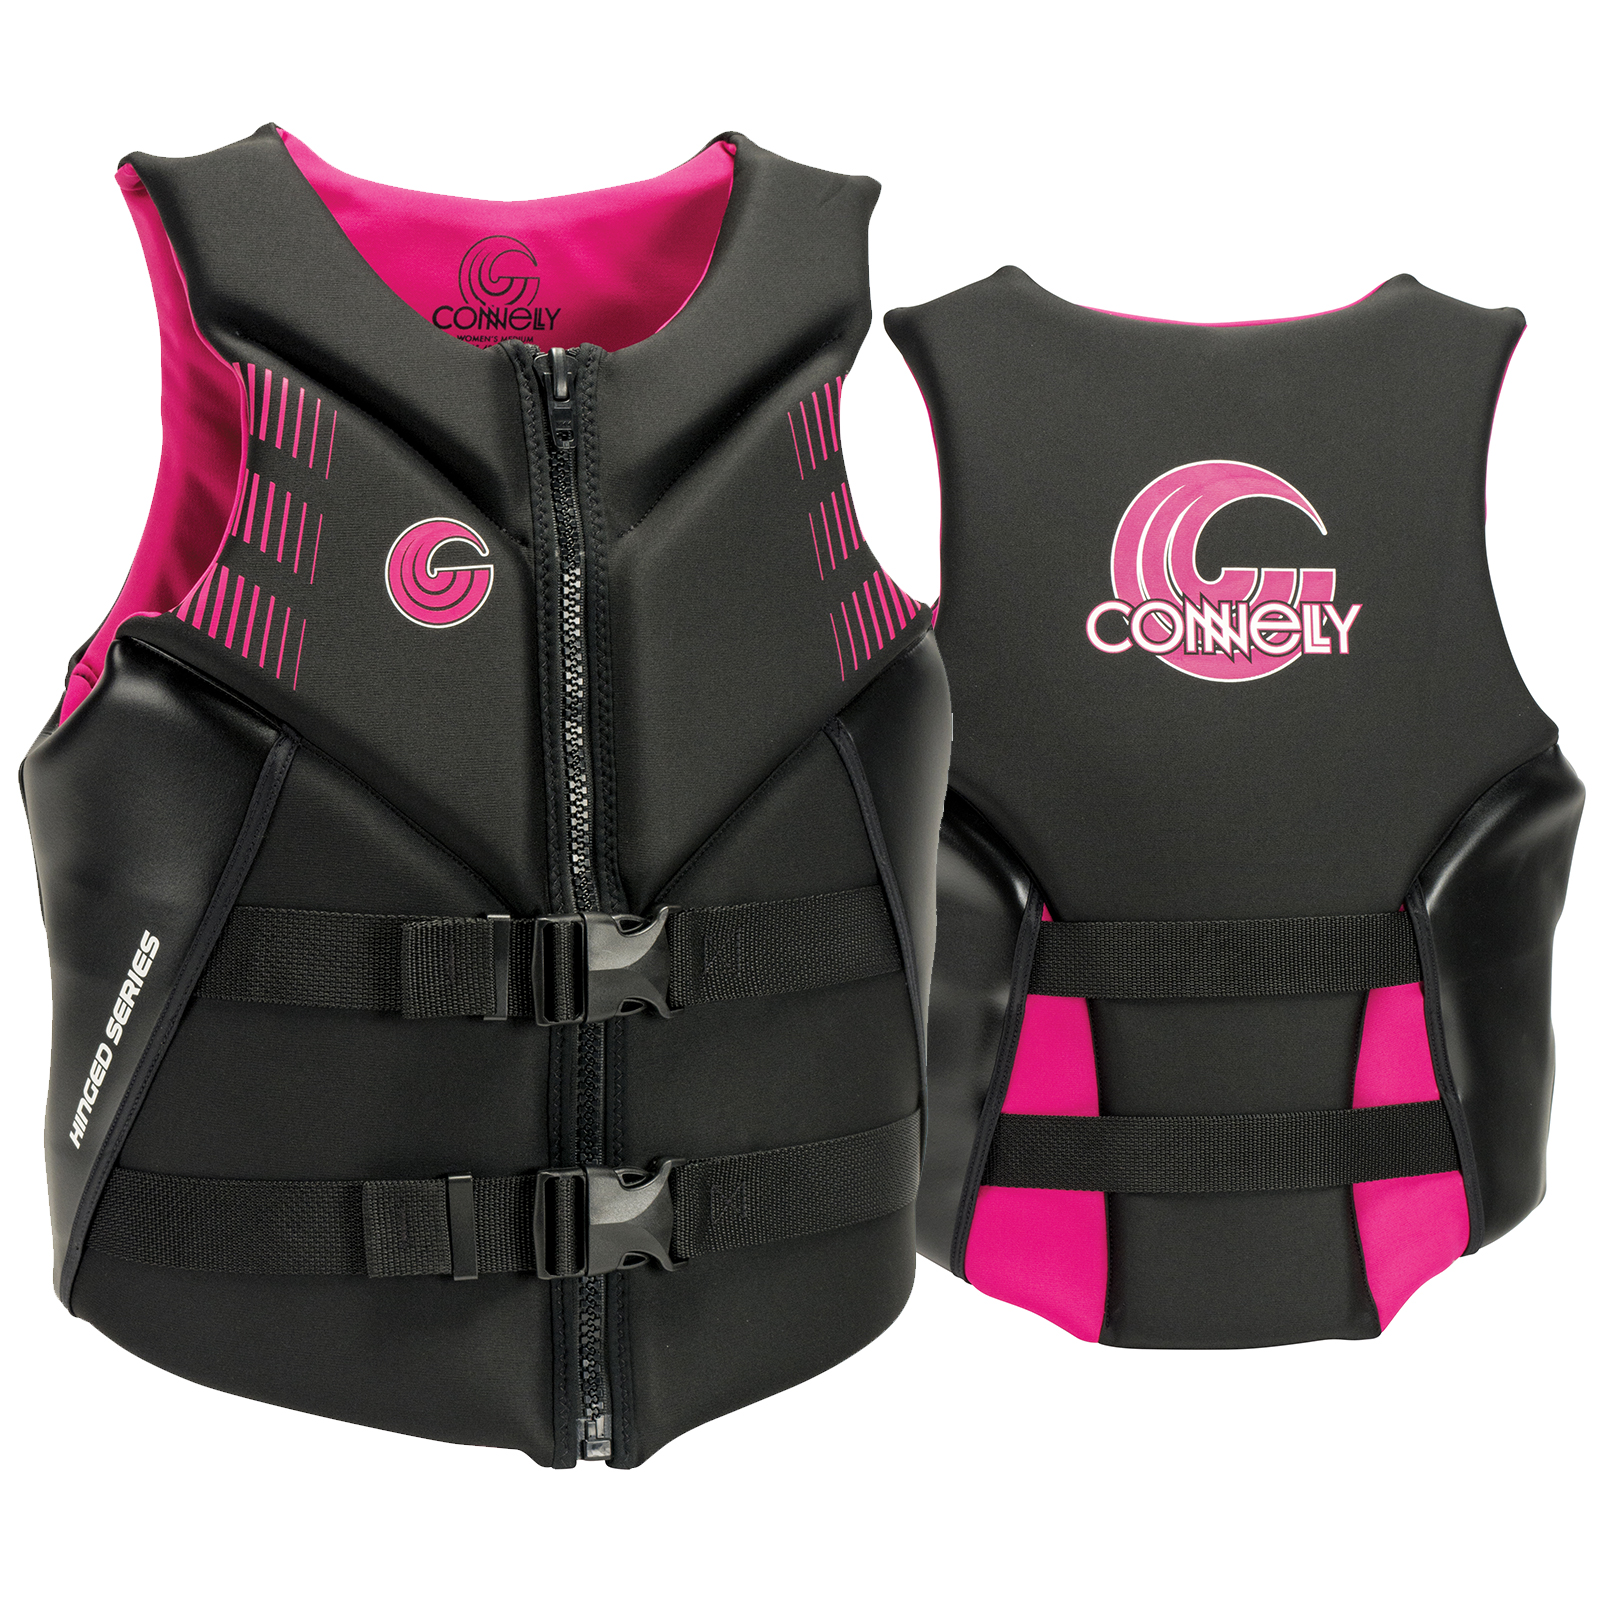 ASPECT WOMEN'S NEO LIFE VEST CONNELLY 2019